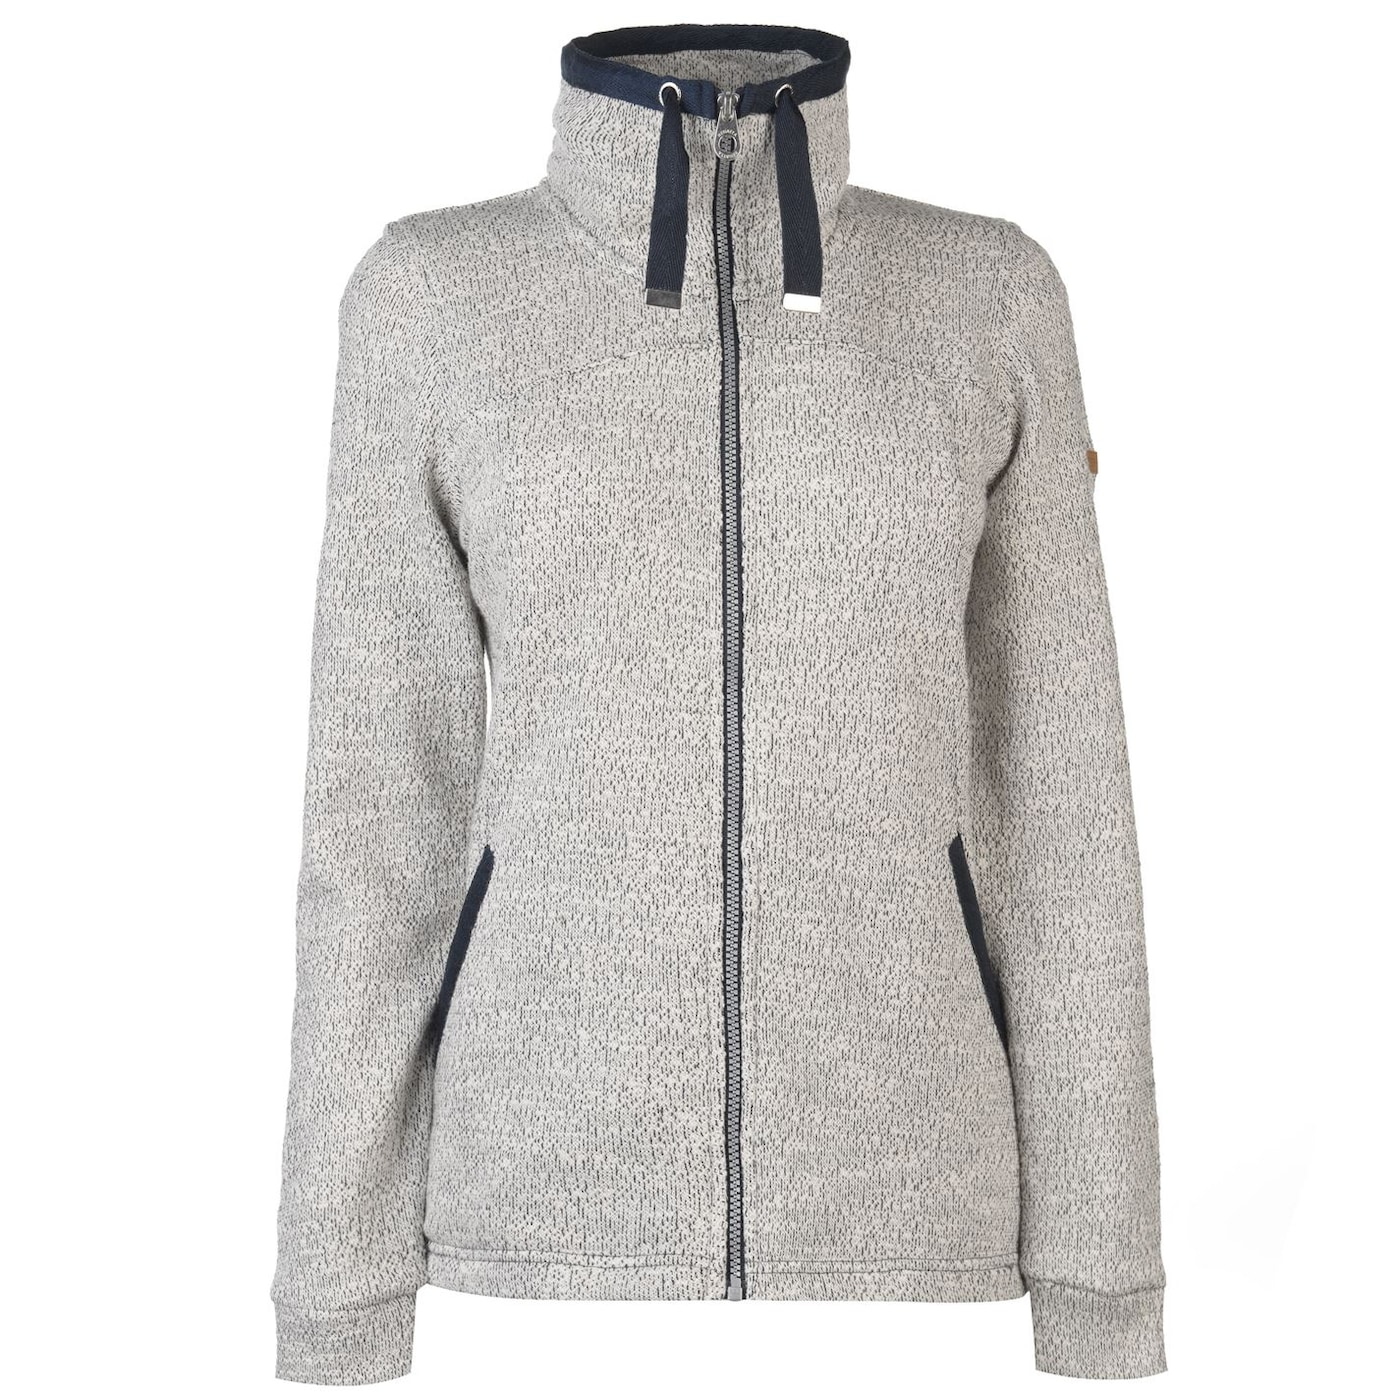 Regatta Odetta Fleece Ladies